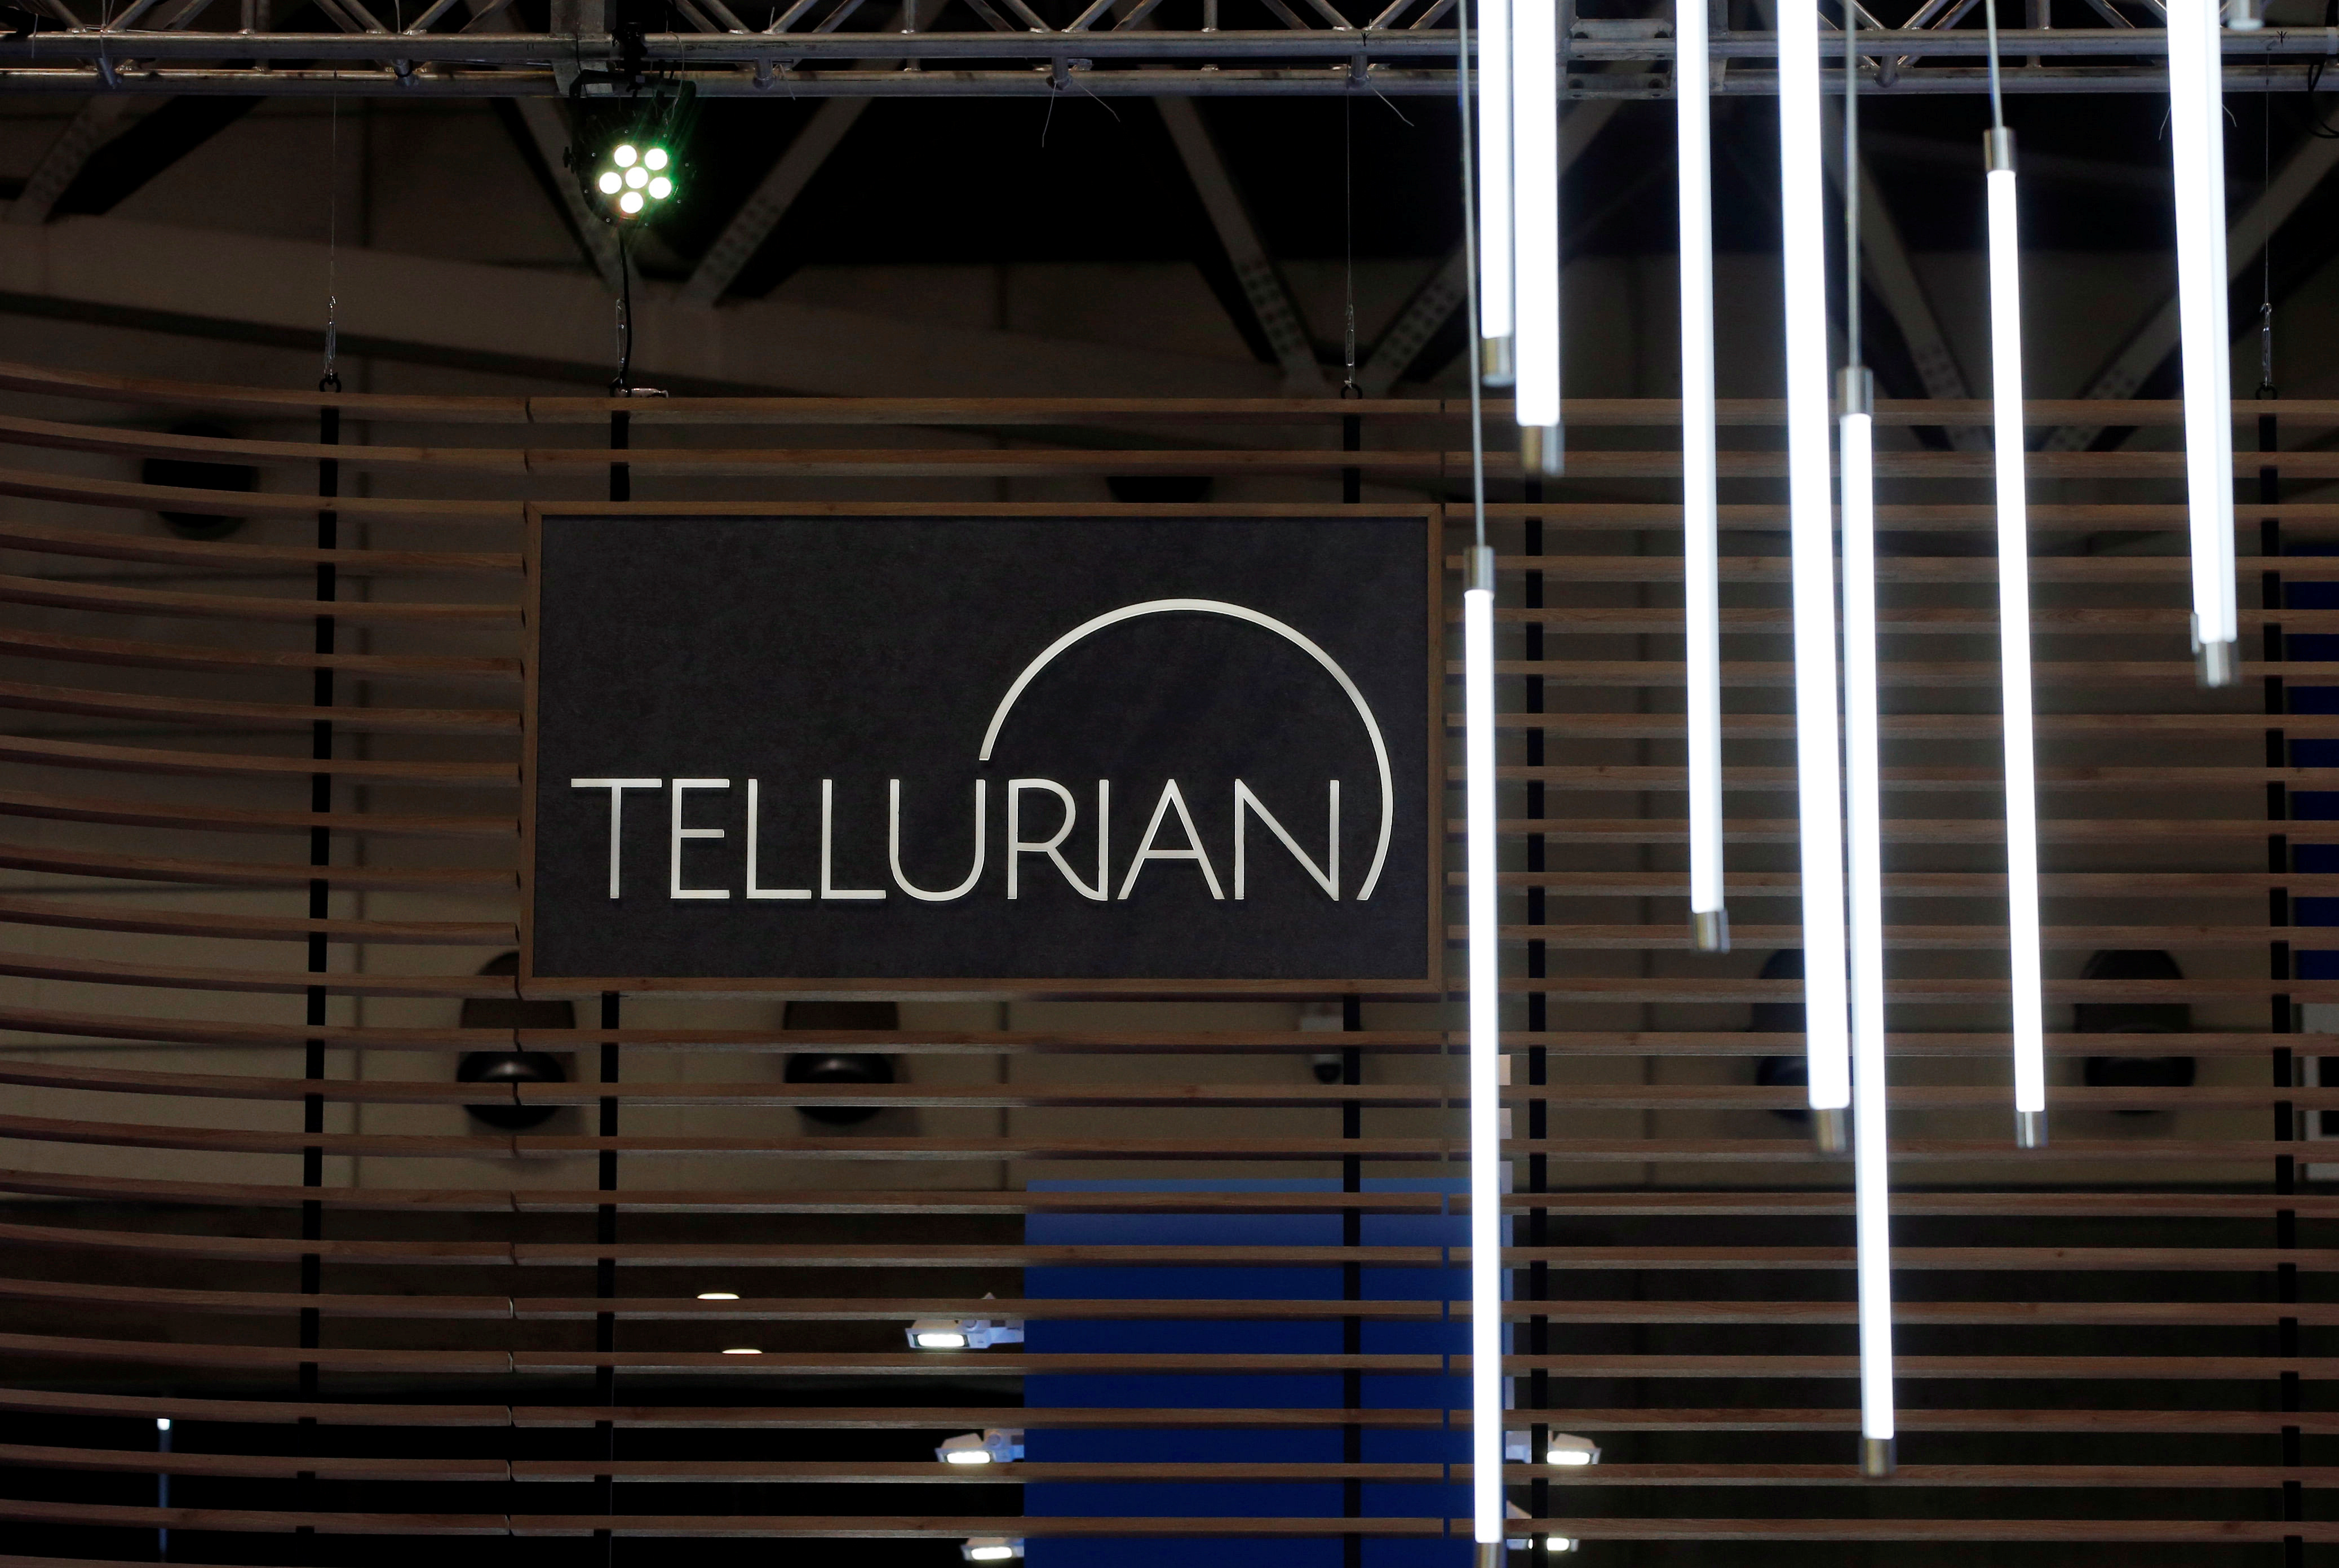 Will Tellurian (TELL) Stock Collapse Or Surge Even Higher After Volatility?